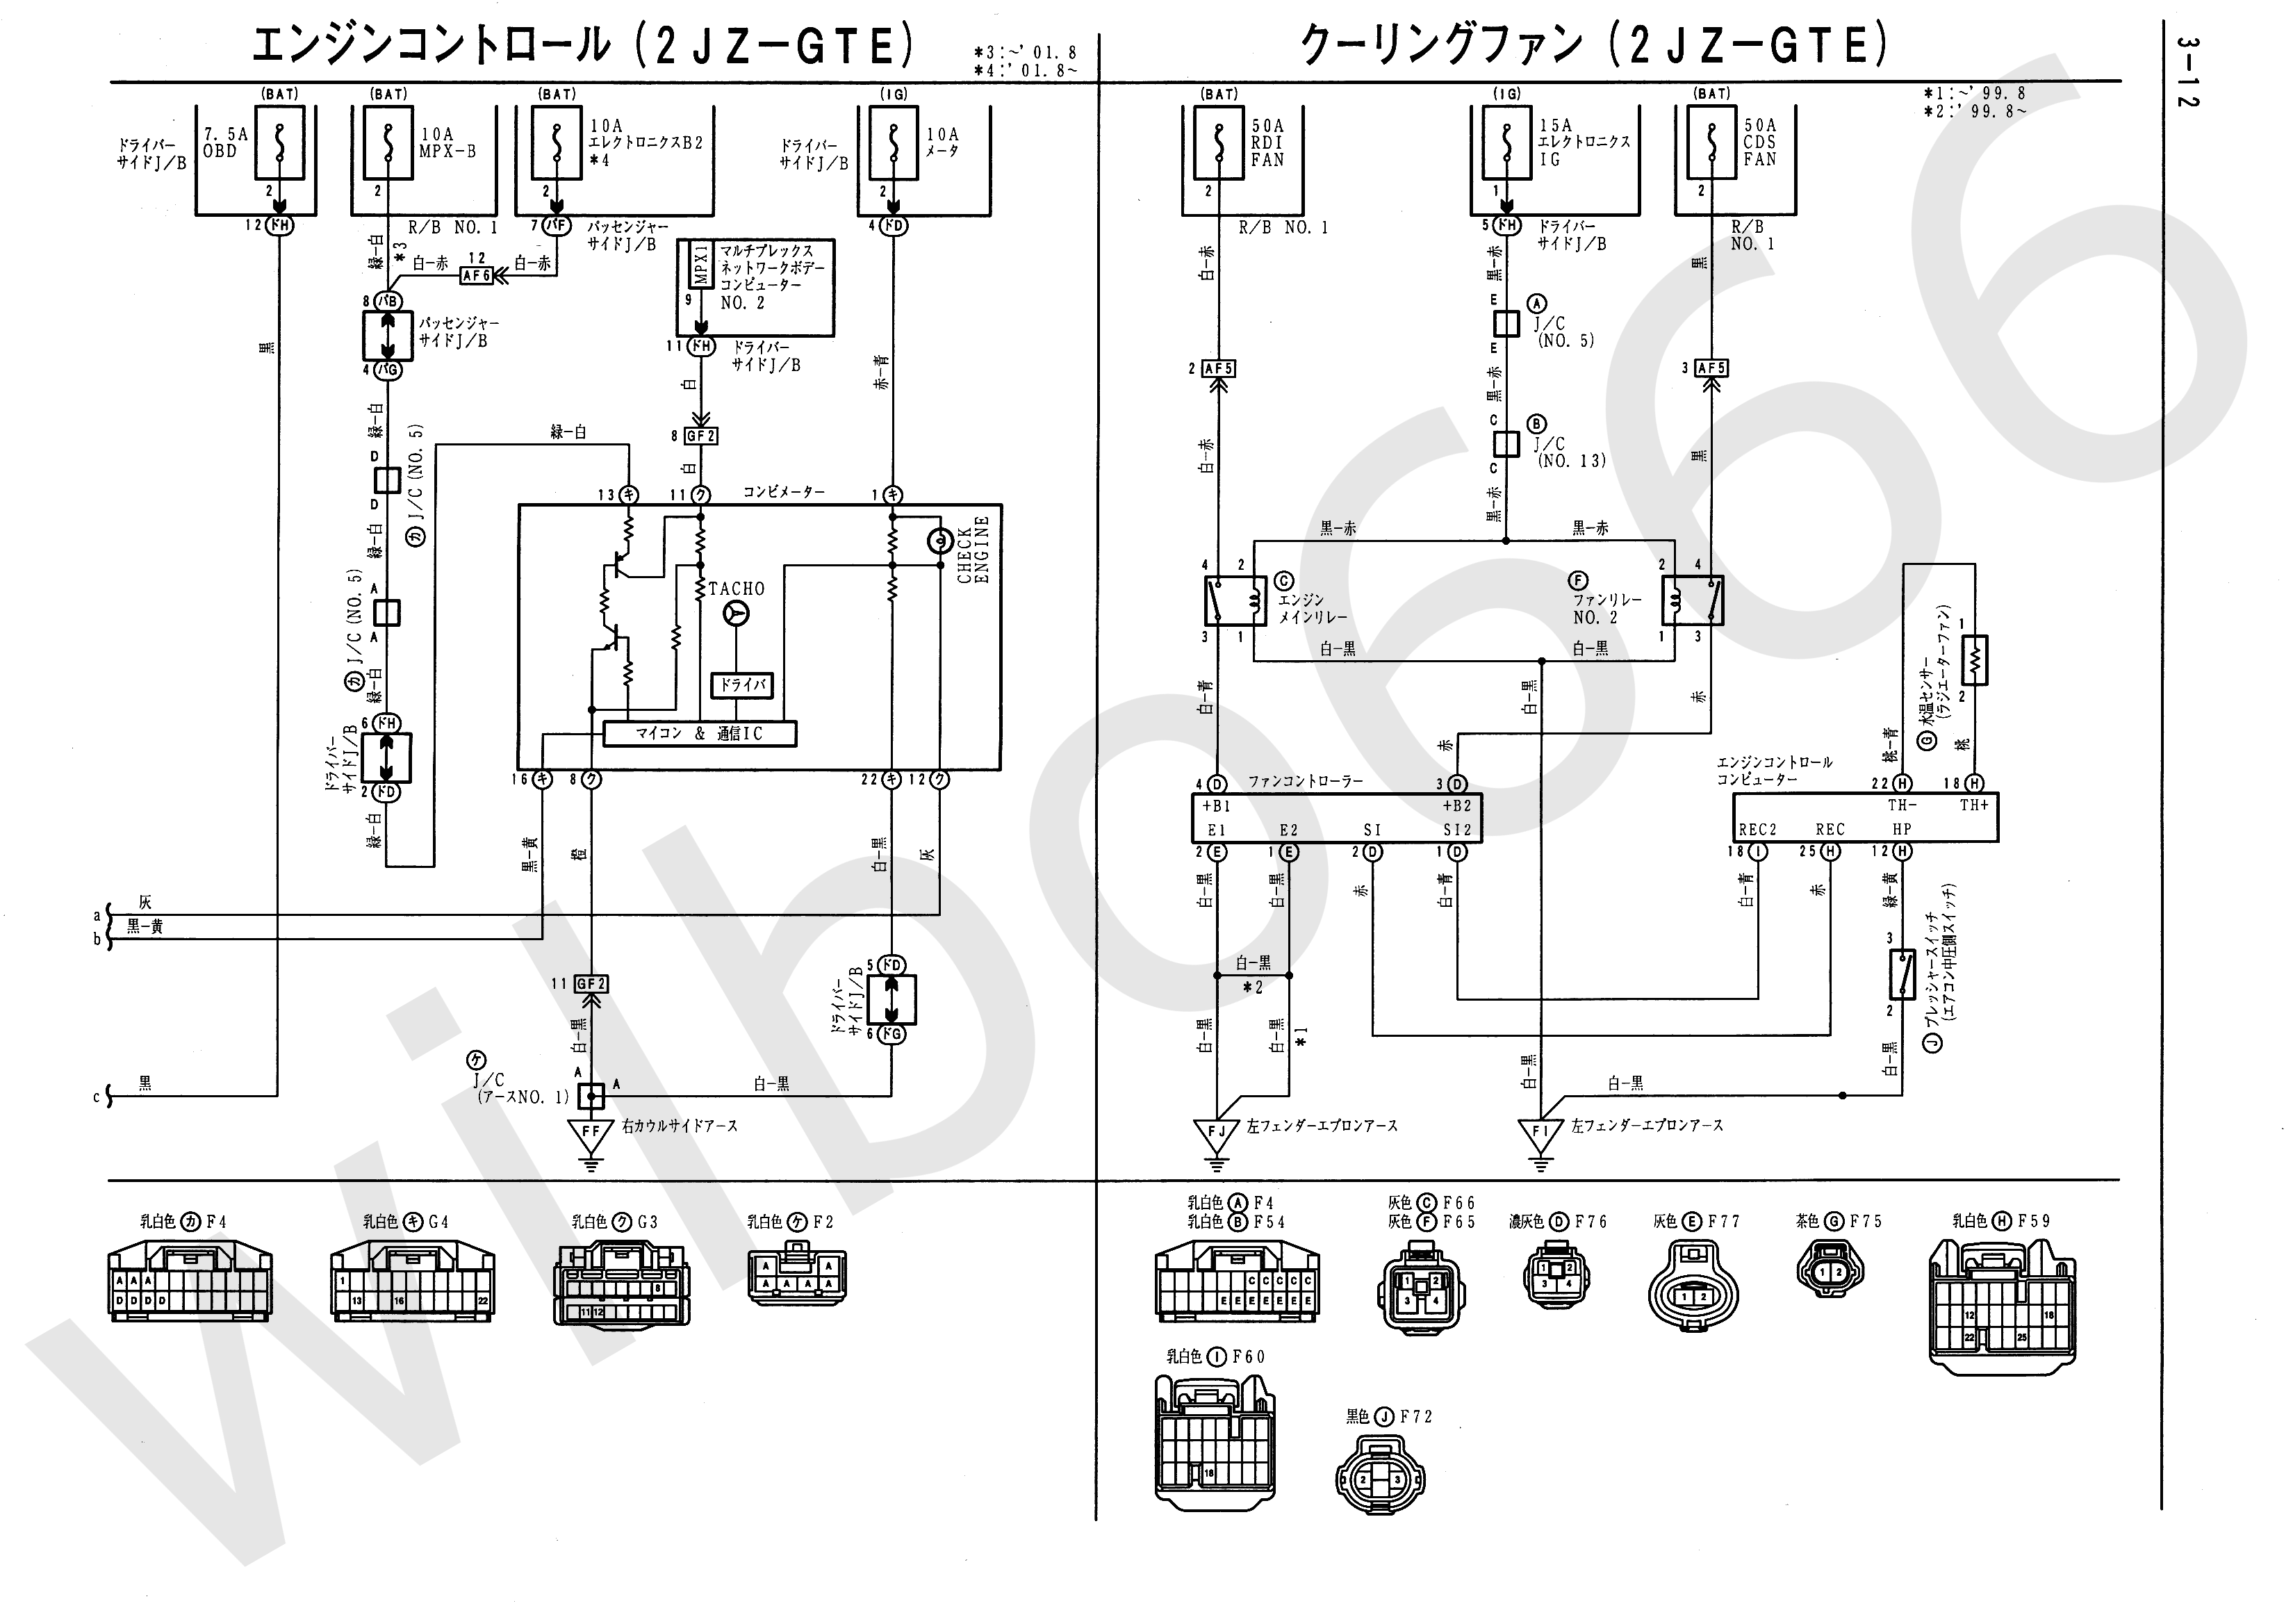 2jz Alternator Wiring Diagram Books Of Engine Images Gallery Wilbo666 Gte Vvti Jzs161 Aristo Rh Pbworks Com